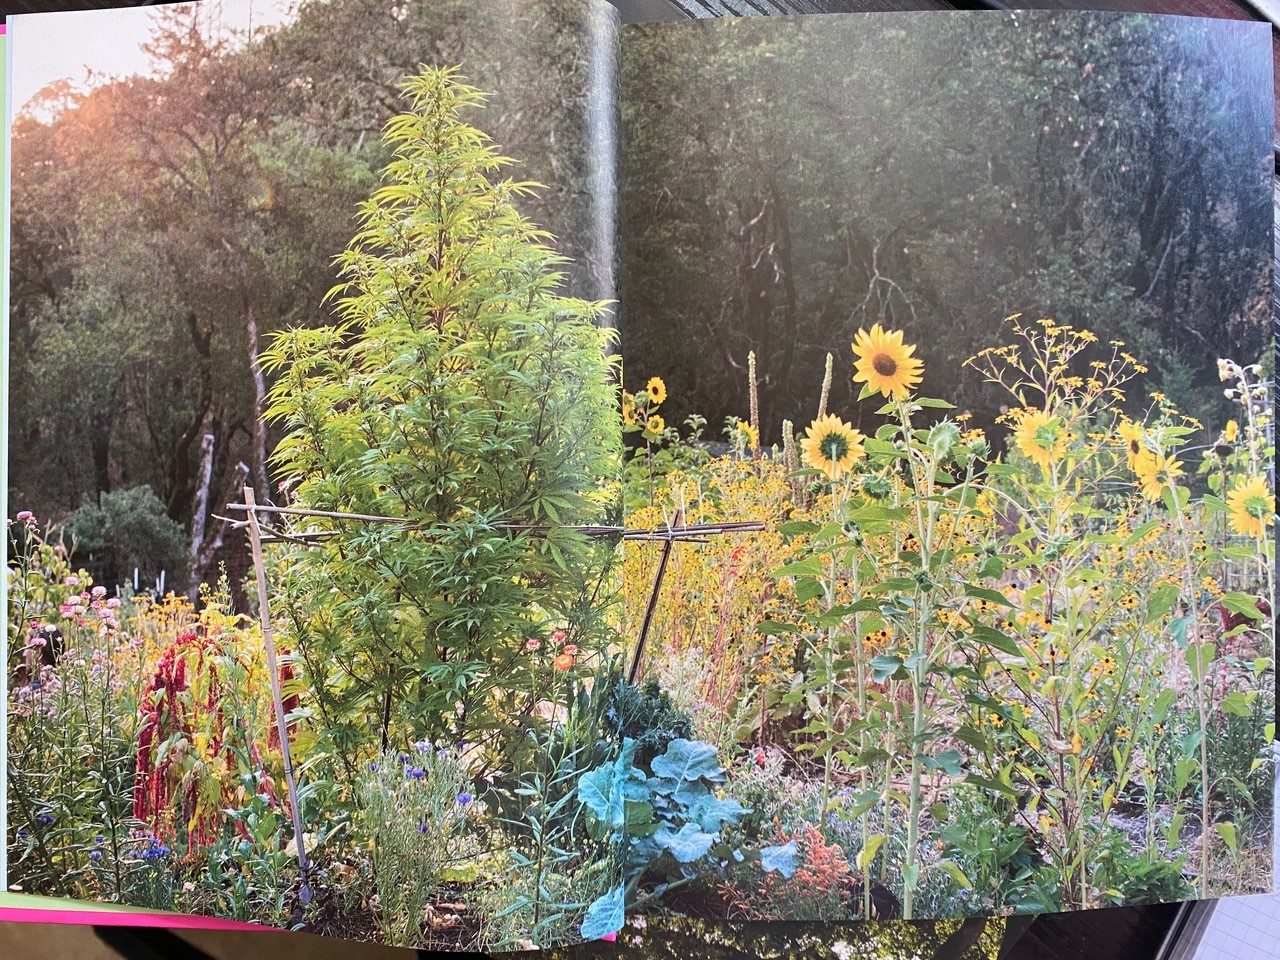 Caption: PHOTO from book: From Growing Weed in the Garden. Photographs by Rachel Weill. Published by Abrams Books.